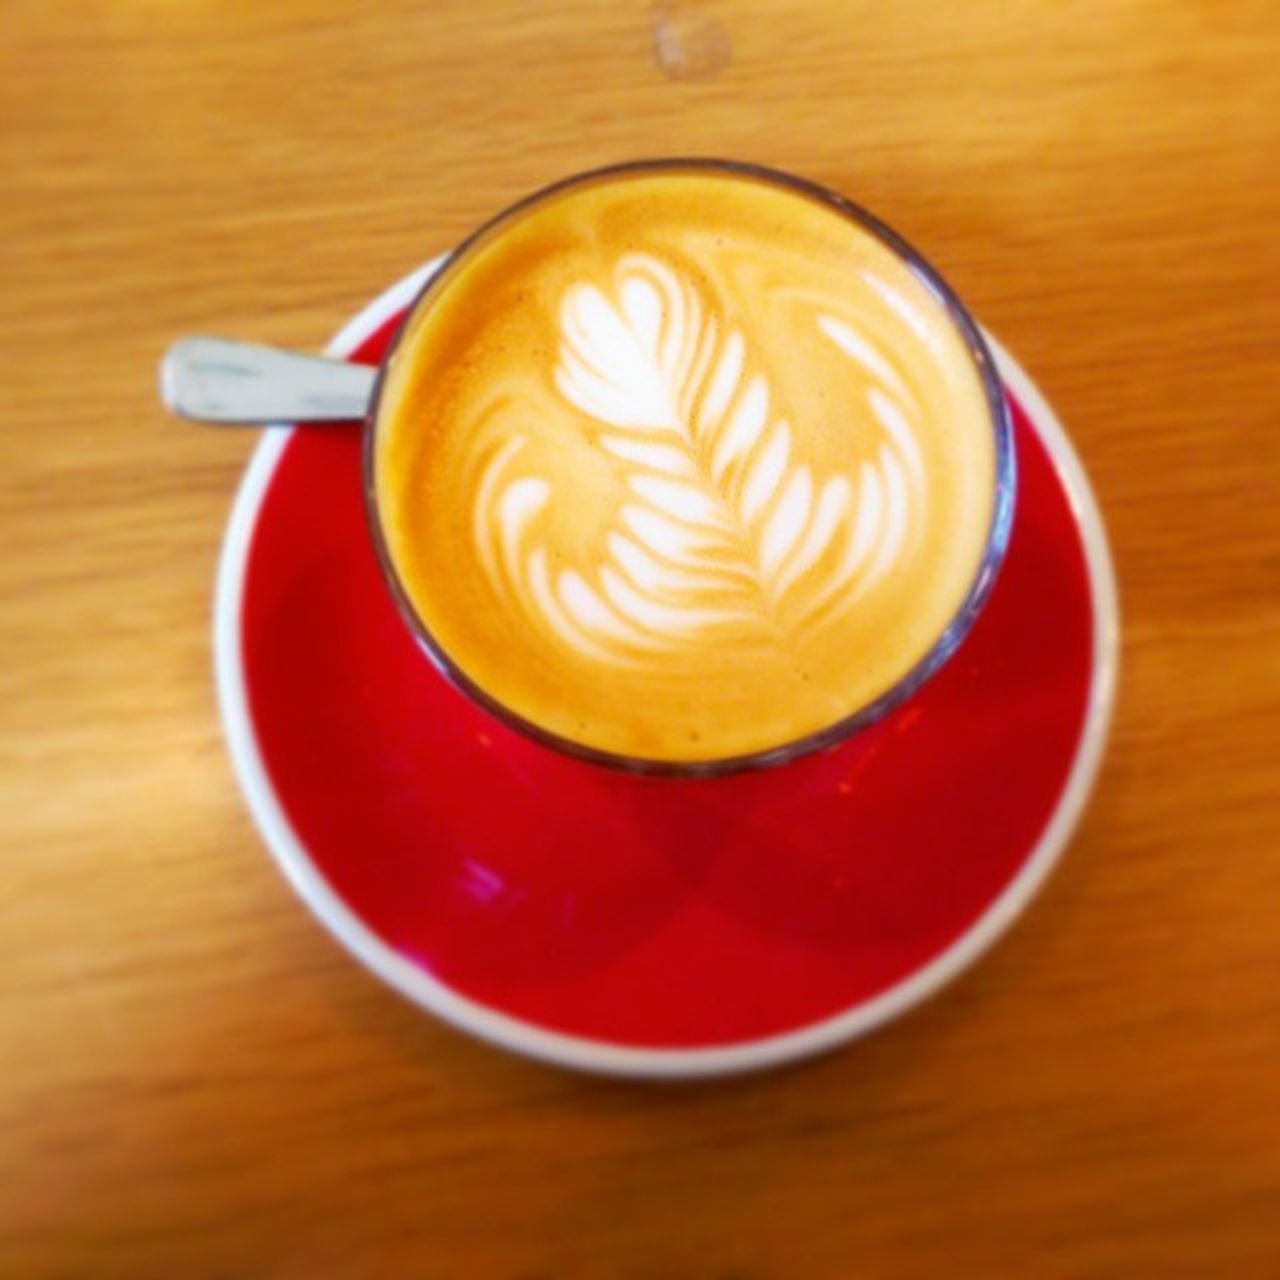 refreshment, frothy drink, drink, coffee cup, food and drink, coffee - drink, froth art, cappuccino, latte, table, no people, directly above, indoors, close-up, day, freshness